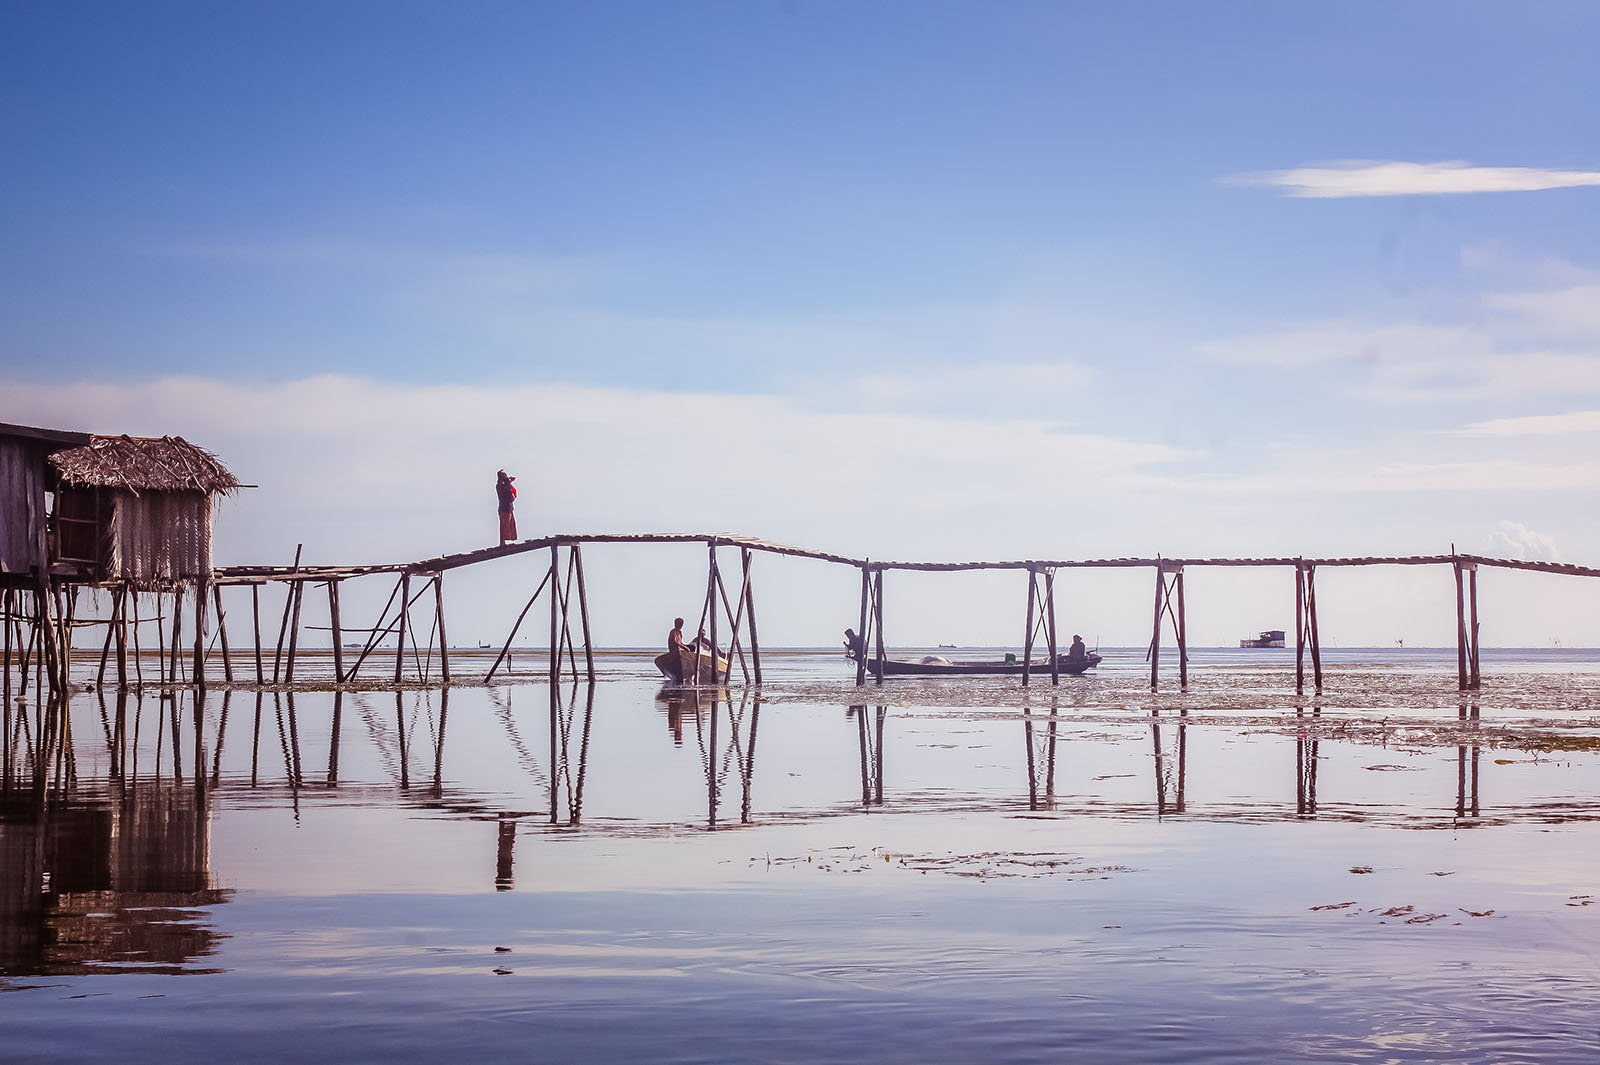 25 Stunning Photos That Will Make You Want To Visit Tawi-Tawi